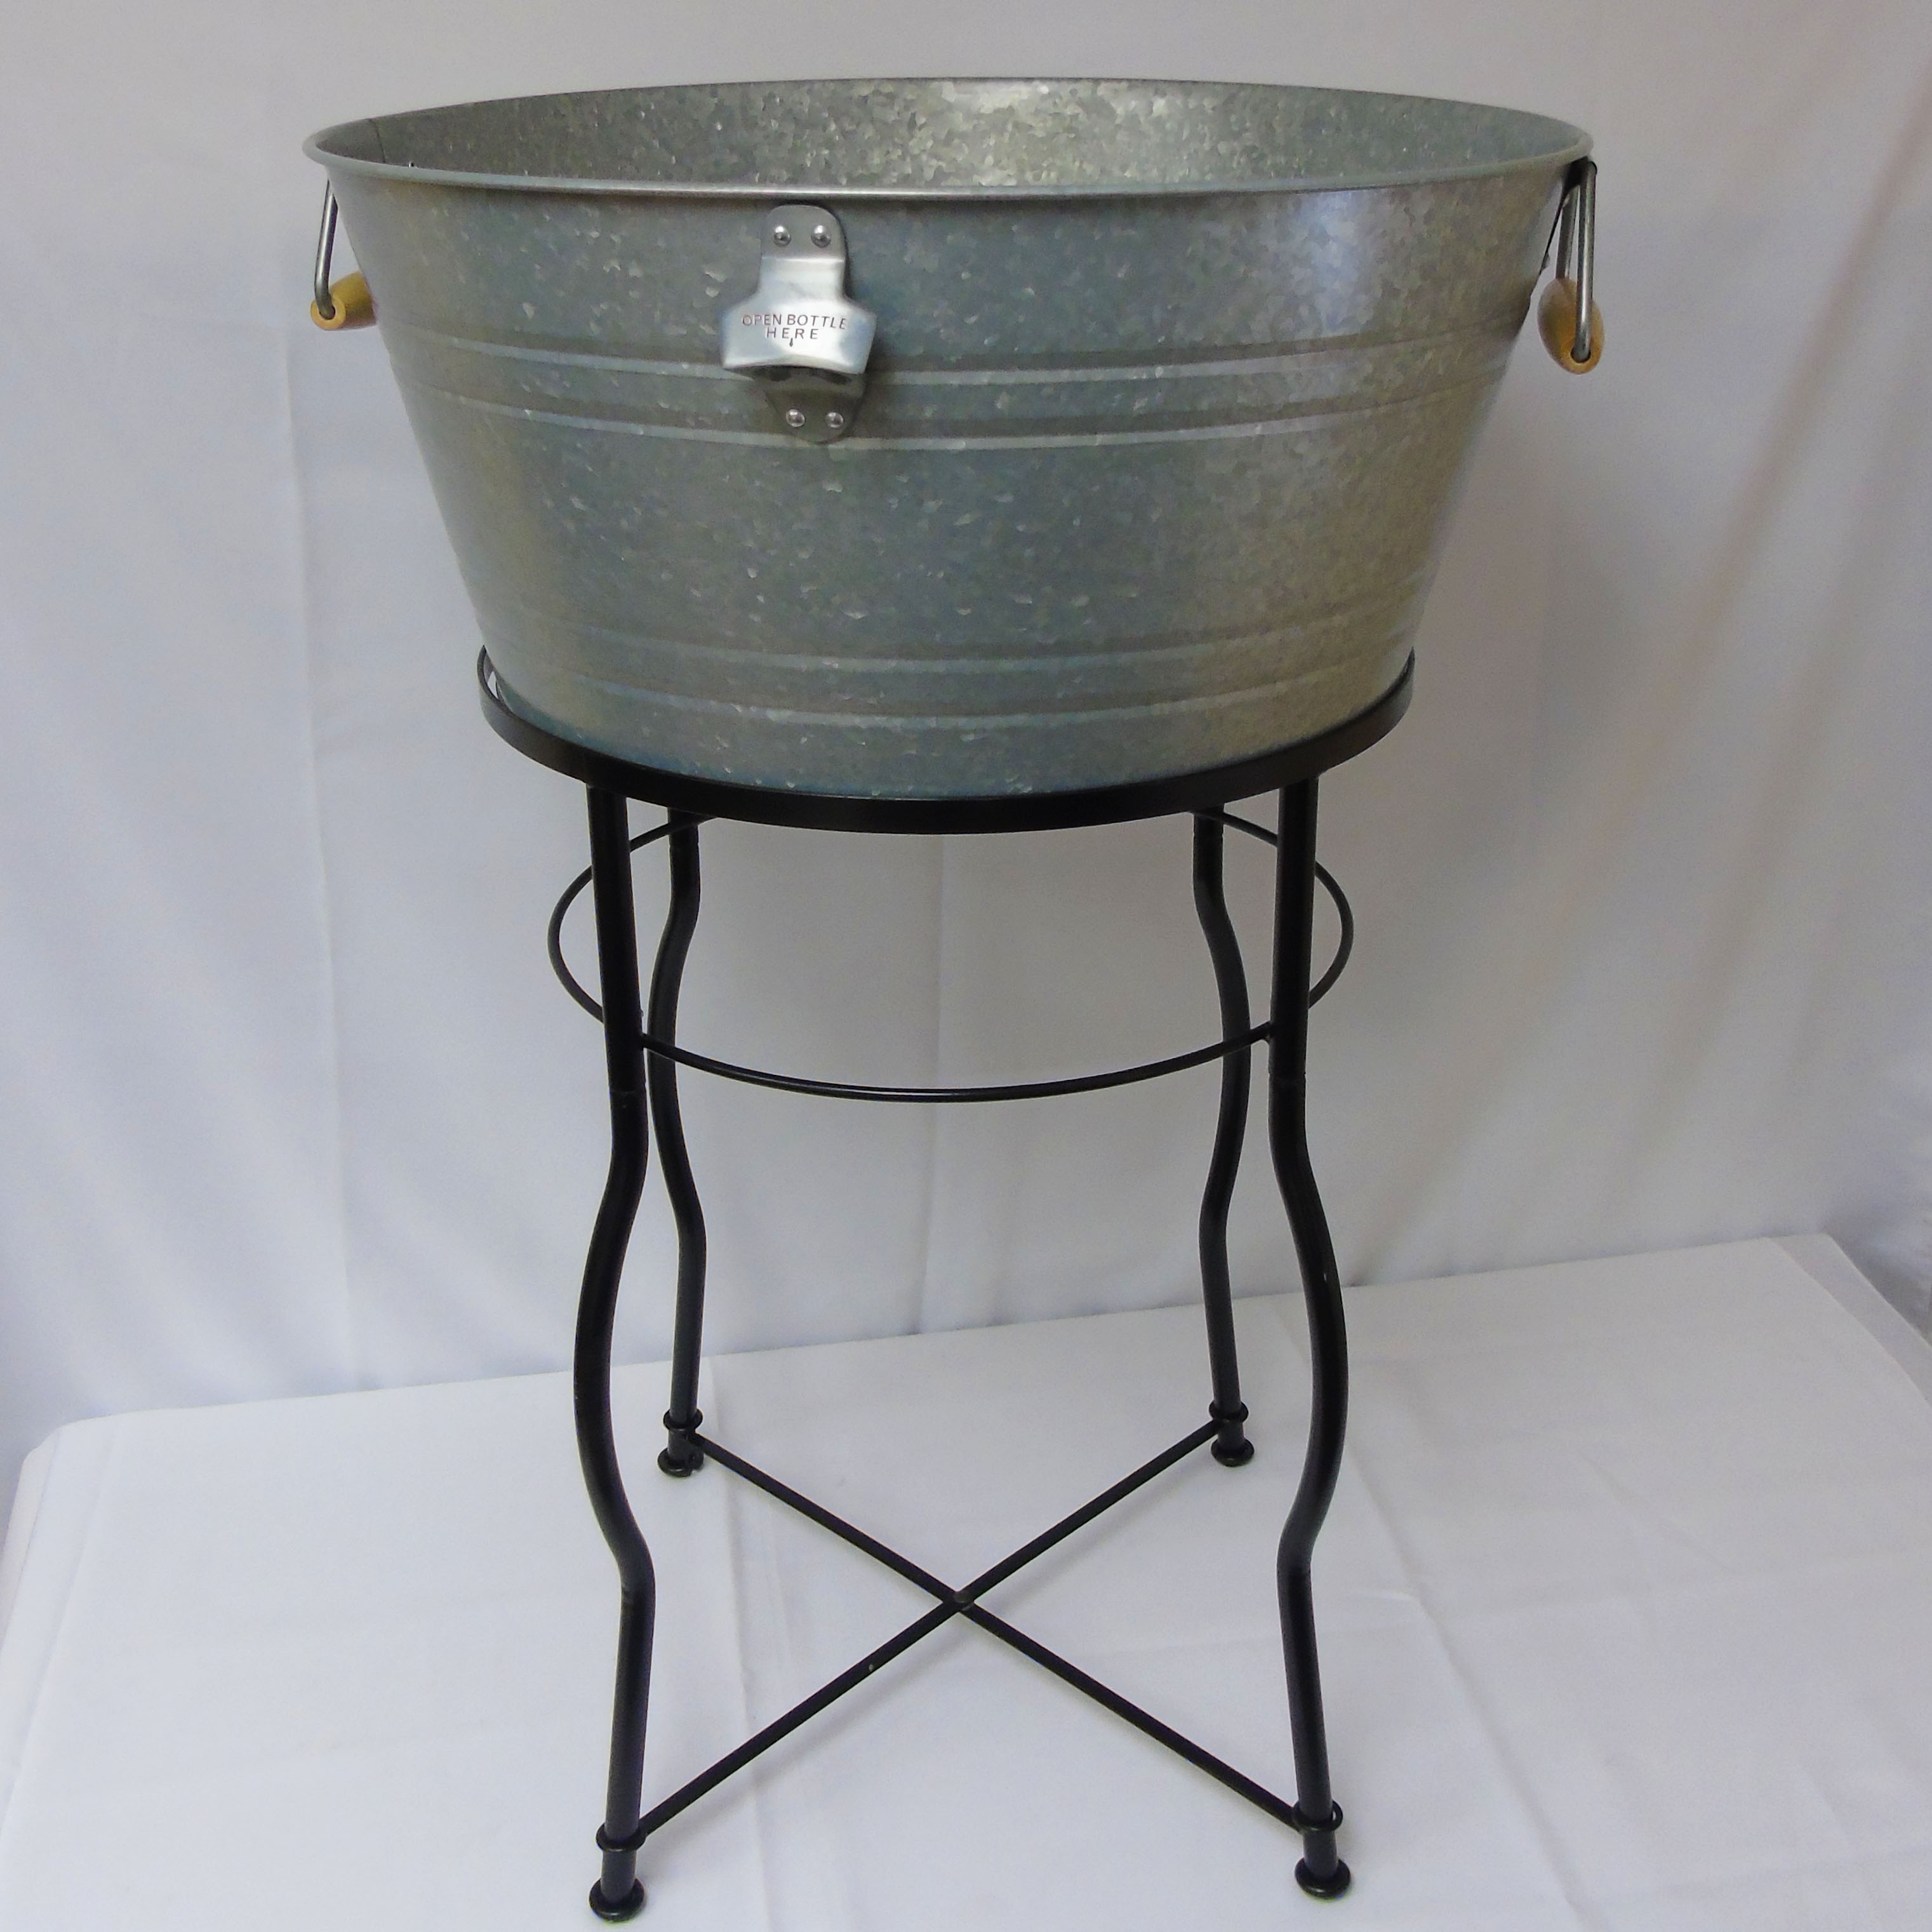 Wash Tub With Stand : ... Pieces / Drink Service / Beverage Wash Tub with Stand, 9.25 Gal